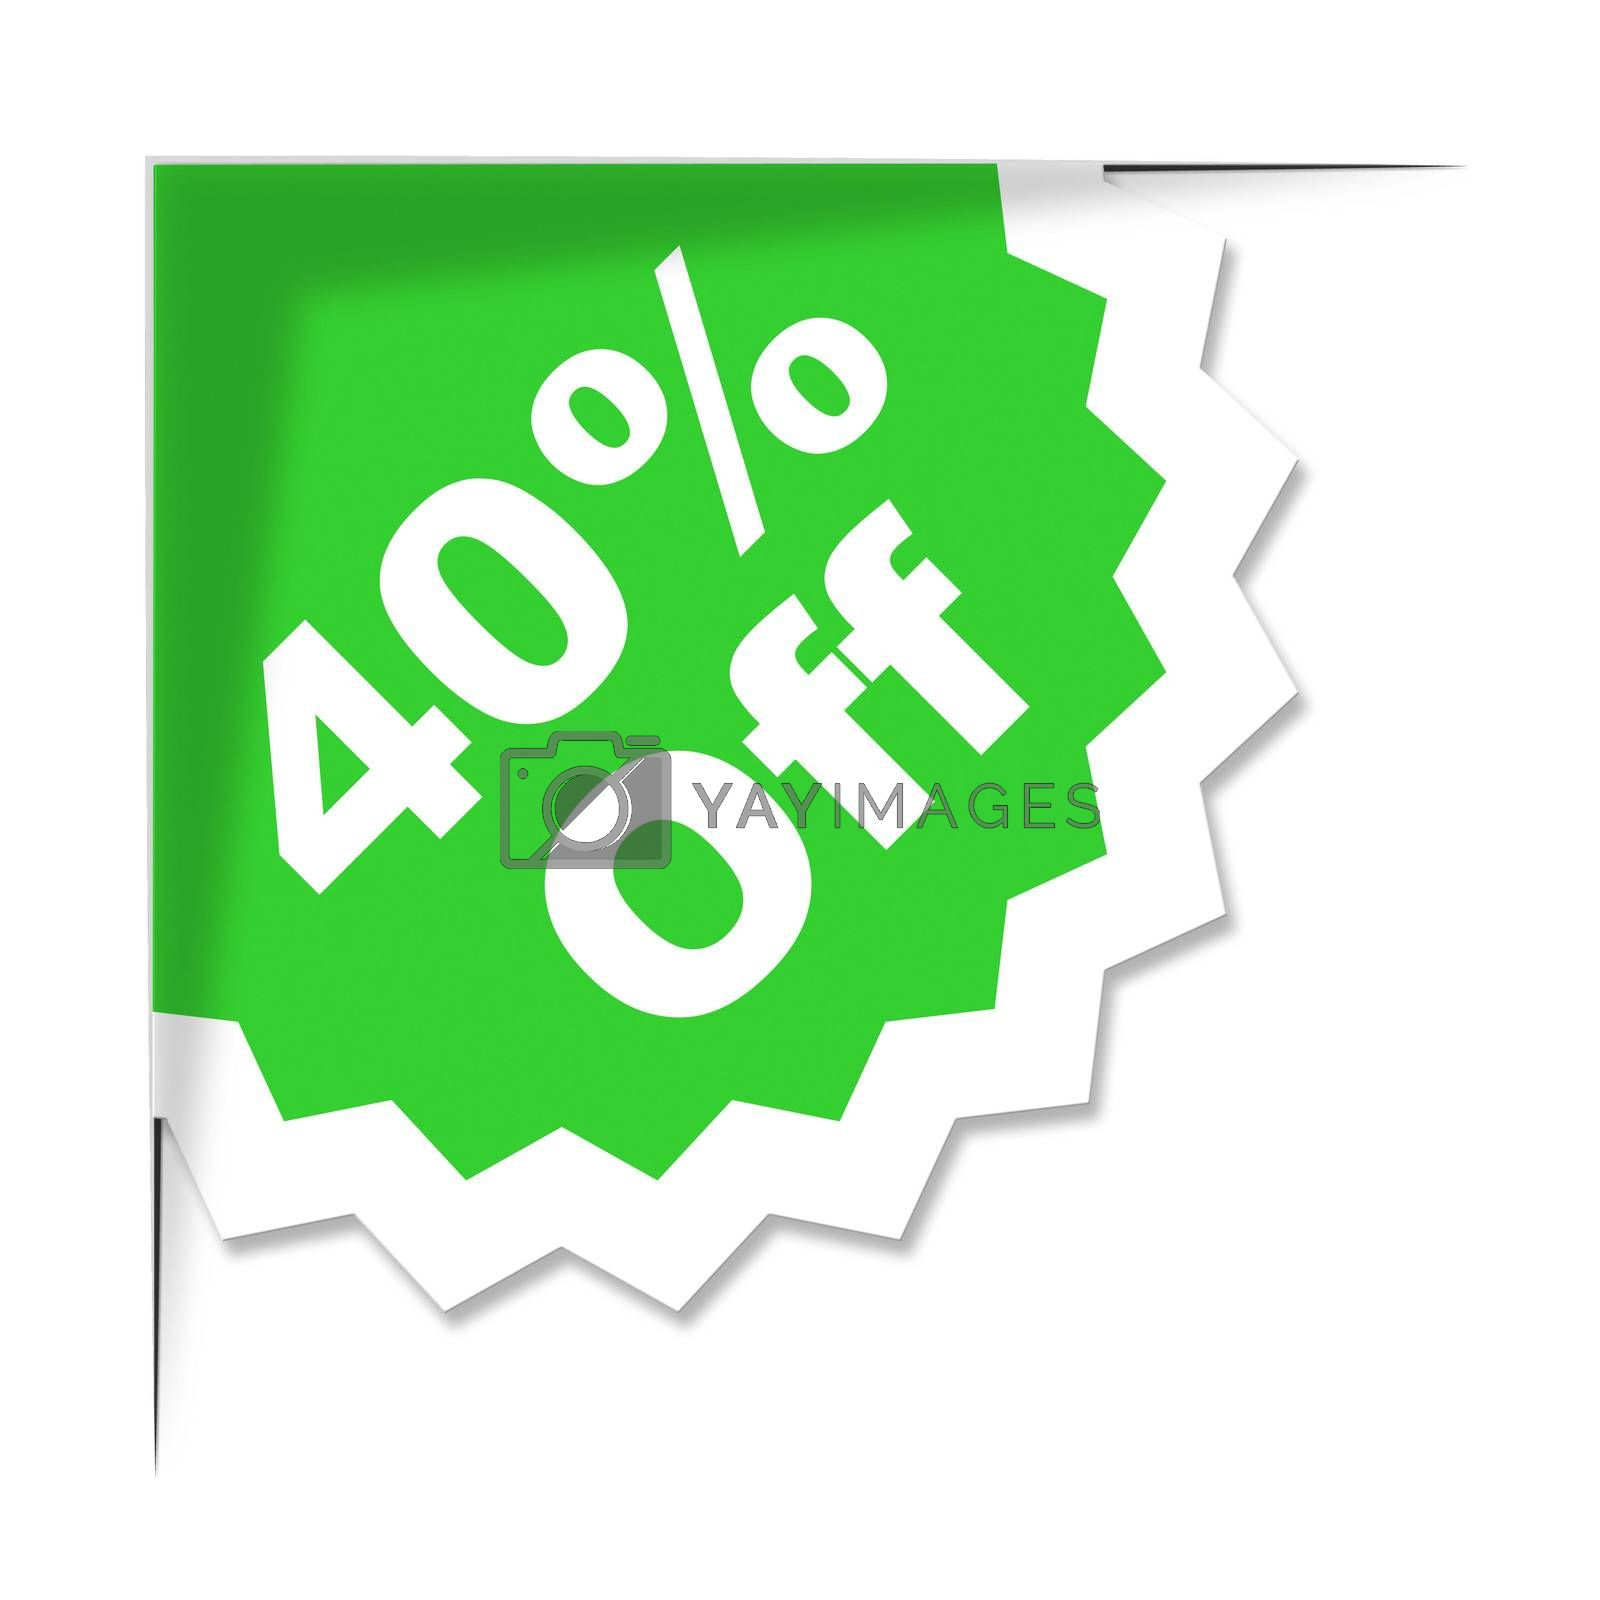 Forty Percent Off Represents Promotional Discount And Discounts by stuartmiles